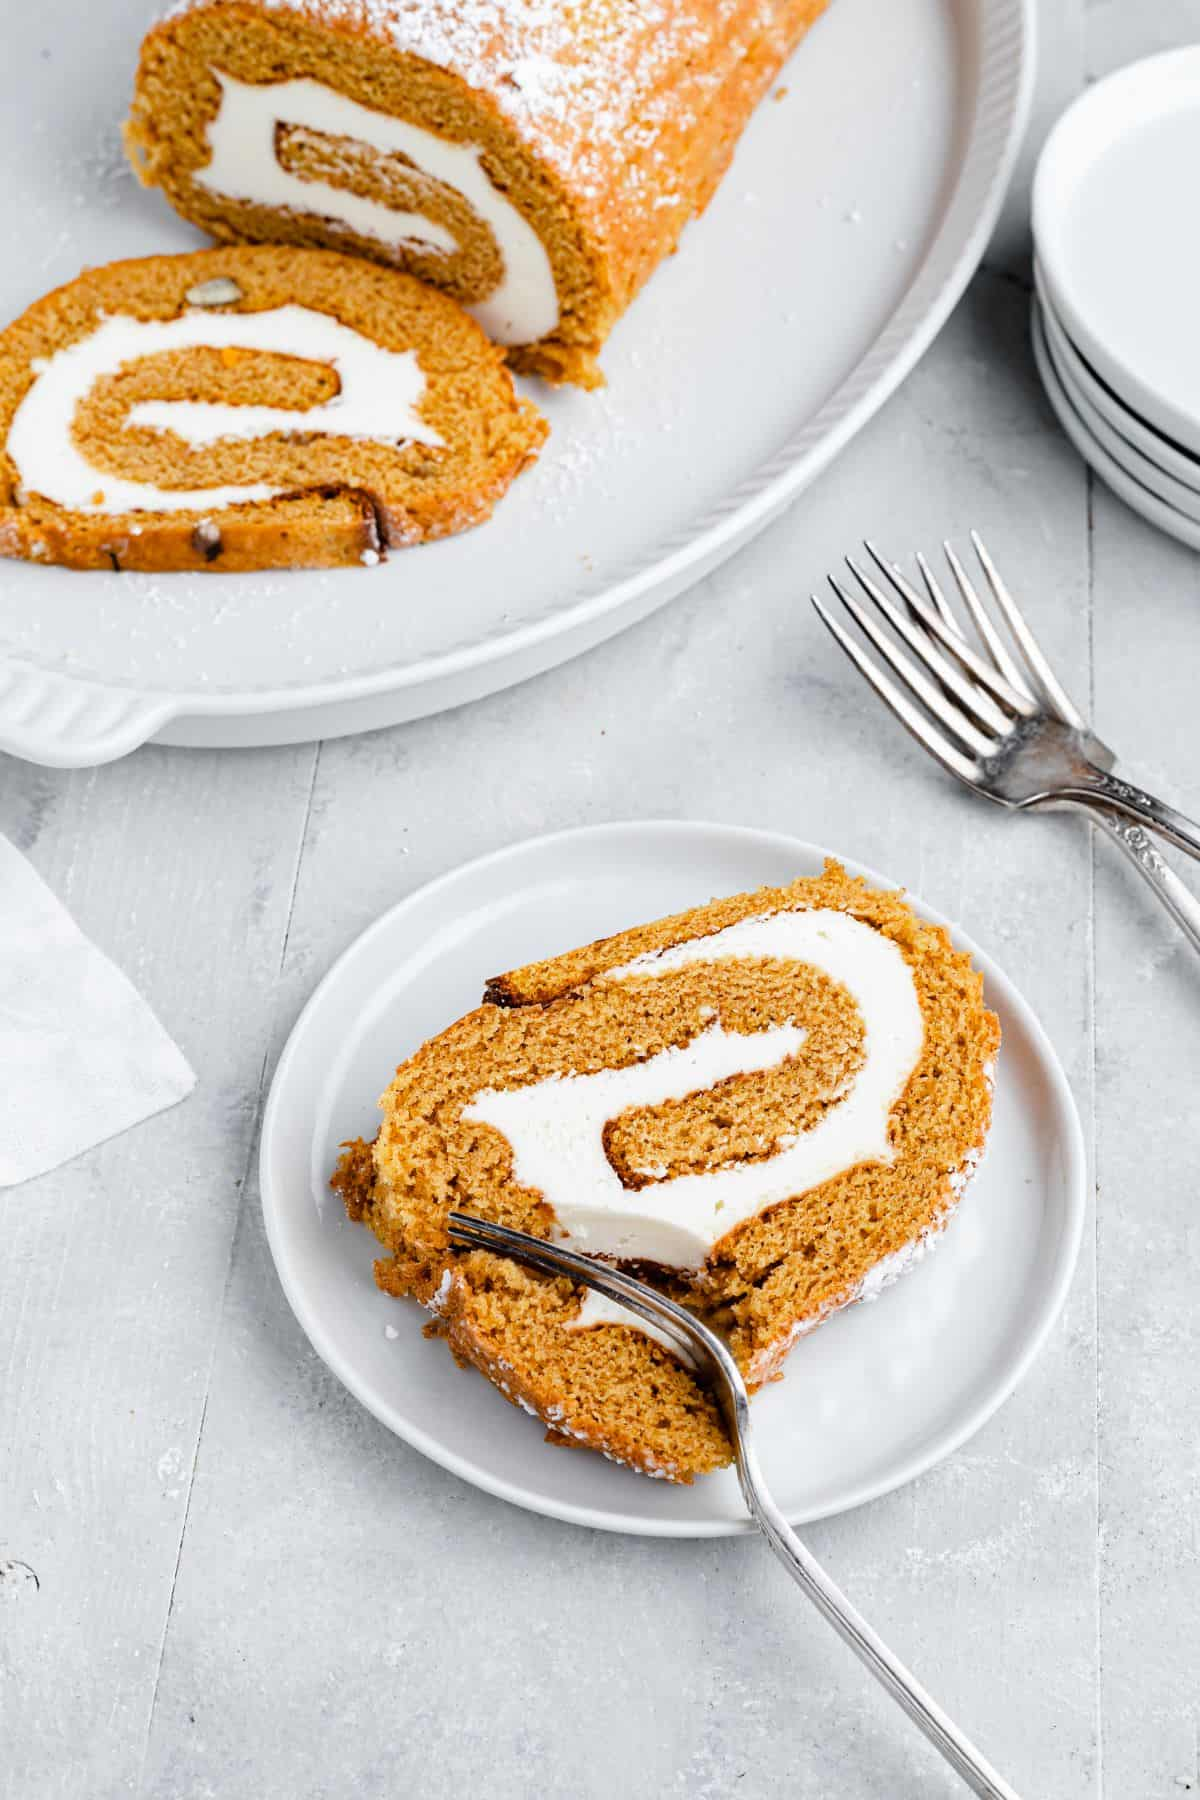 A slice of pumpkin roll cake with a fork cutting into it; in the background, the remaining cake is on a platter with another slice ready to serve.